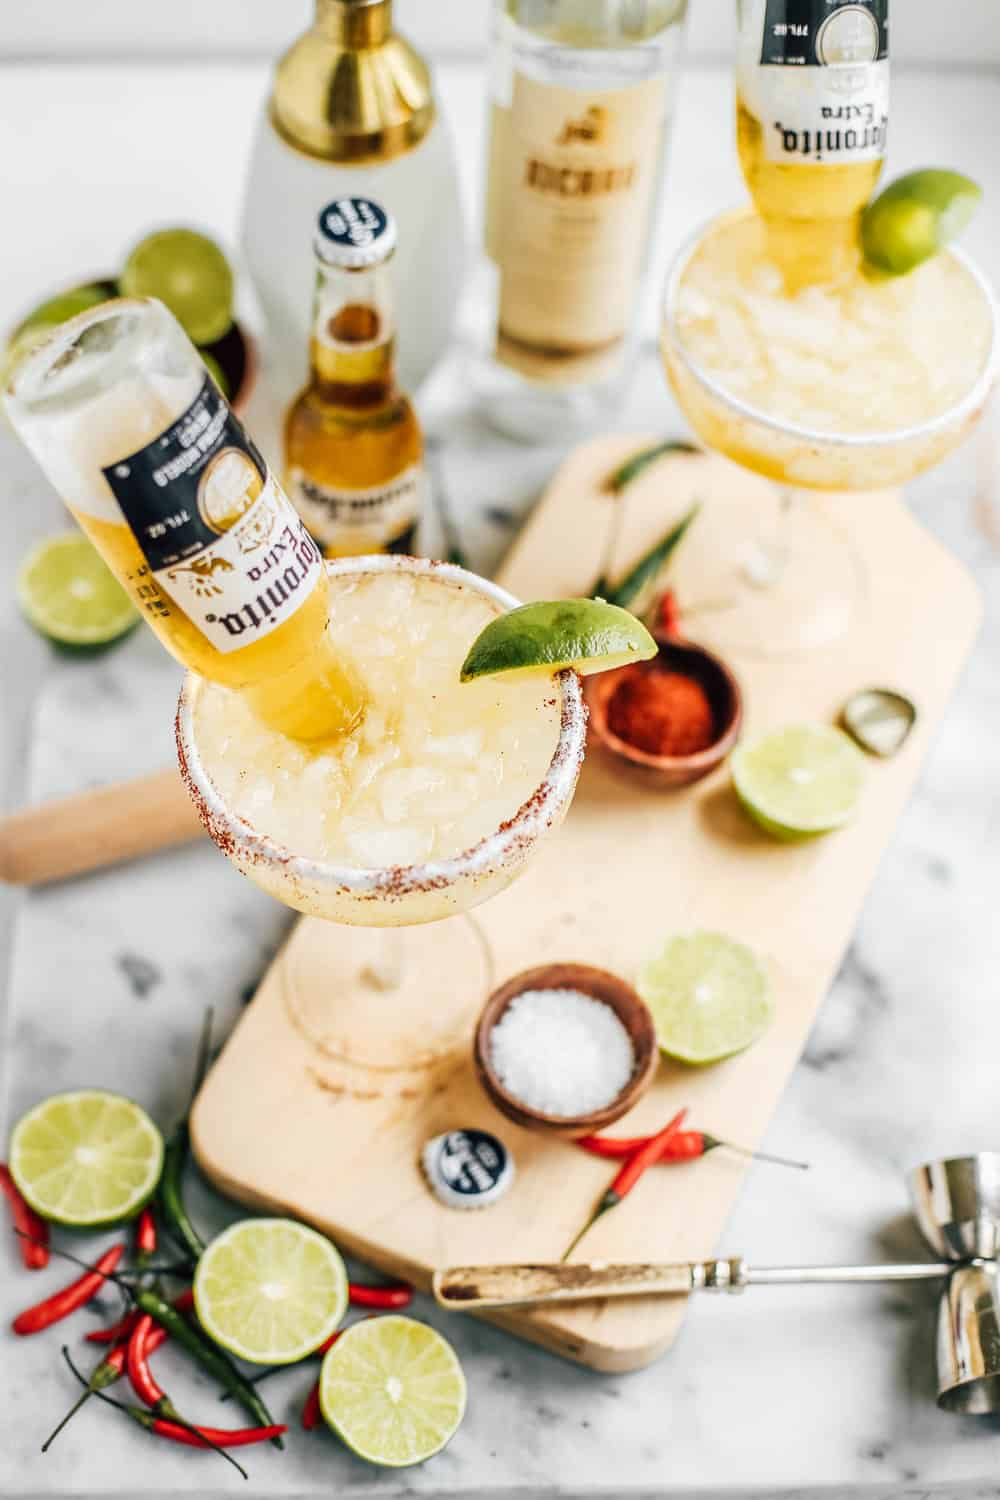 Lime and Chili Mezcal Beergaritas in glasses with Coronitas on a wooden board